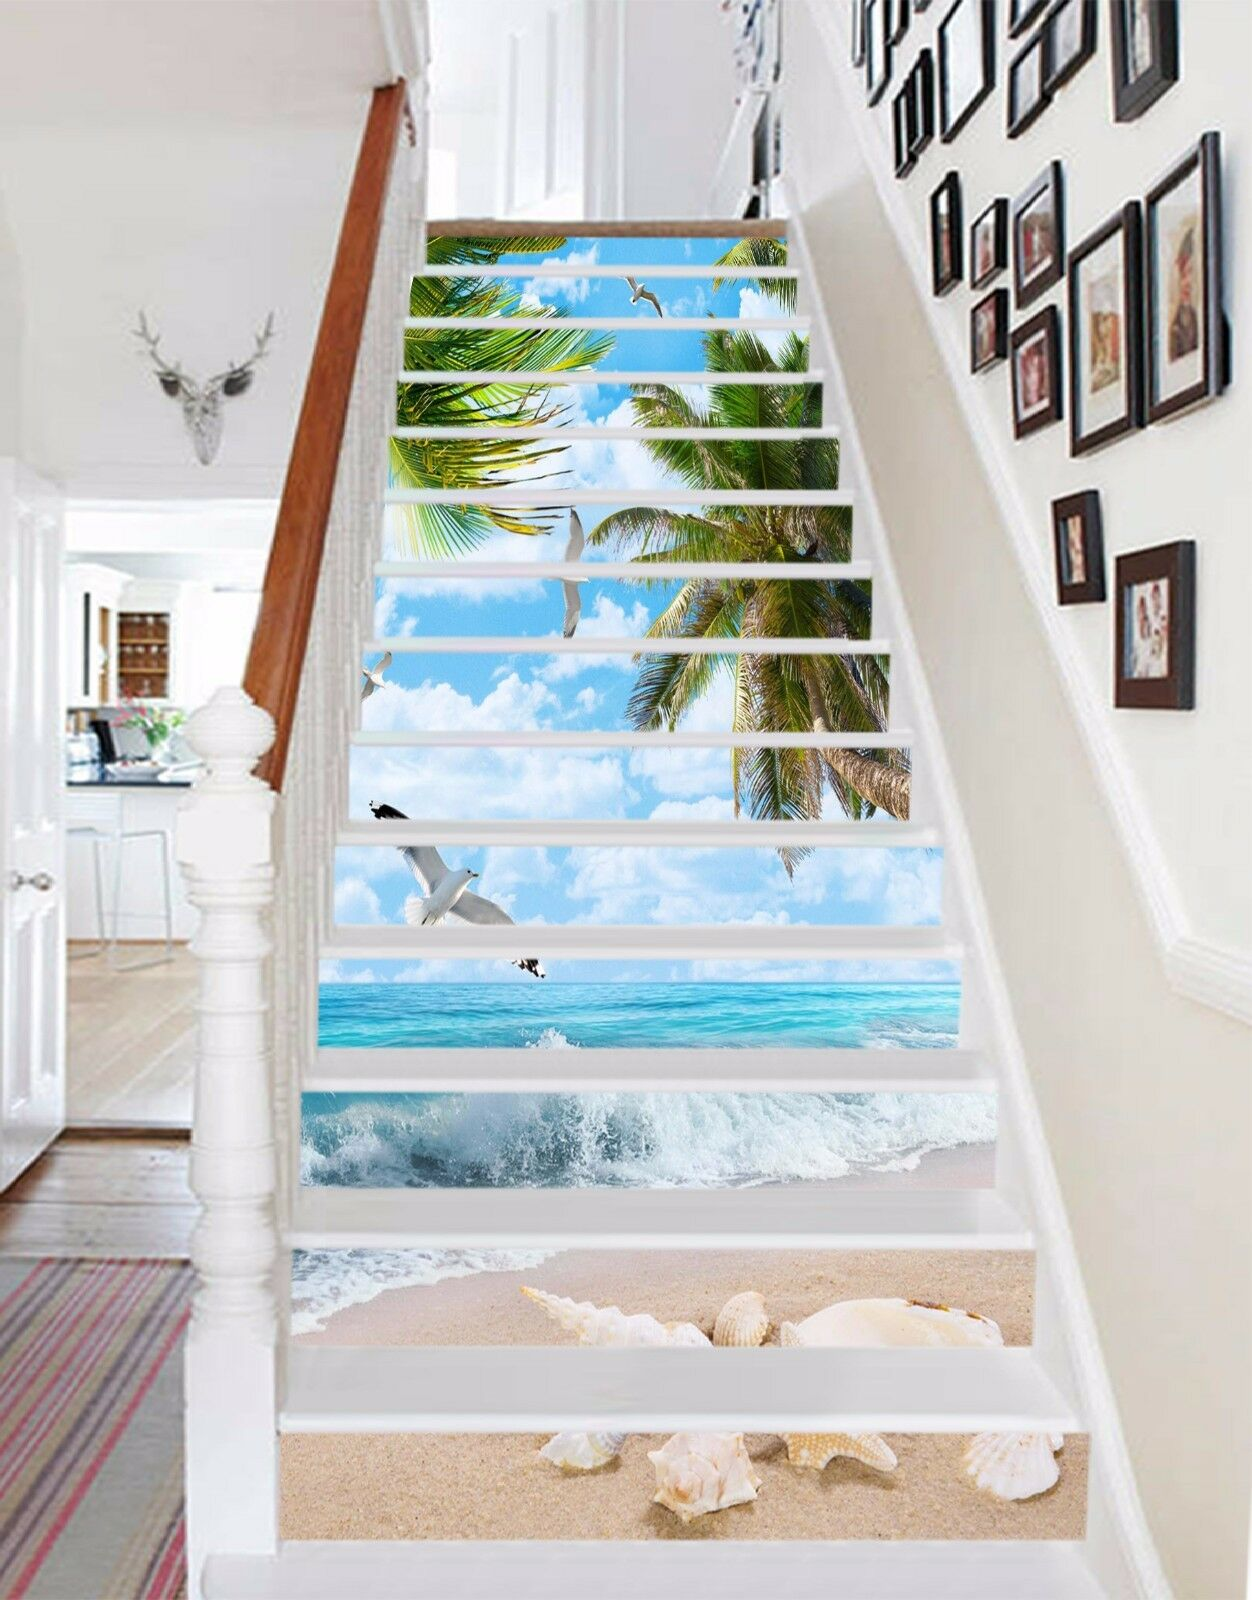 3D Beach View 836 Stair Risers Decoration Photo Mural Vinyl Decal Wallpaper AU